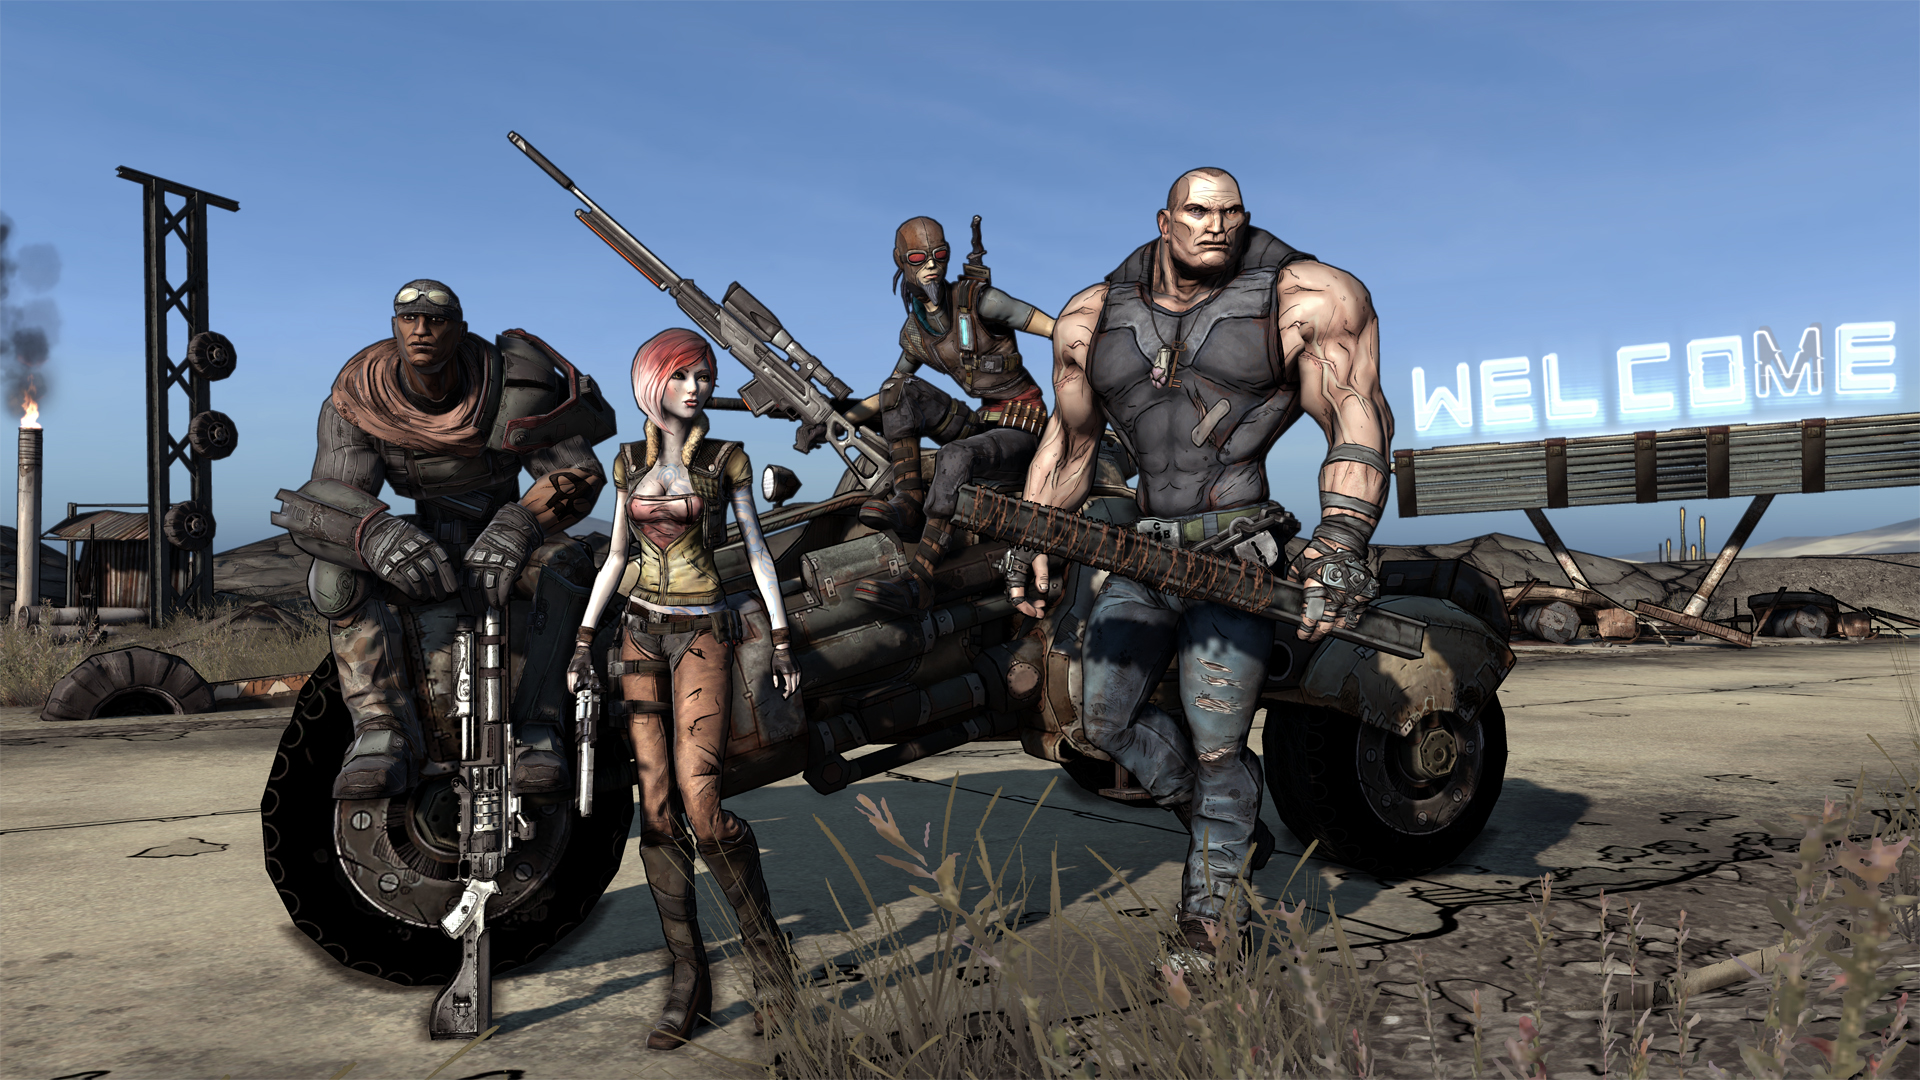 Civilization and Borderlands series will move servers to Steamworks